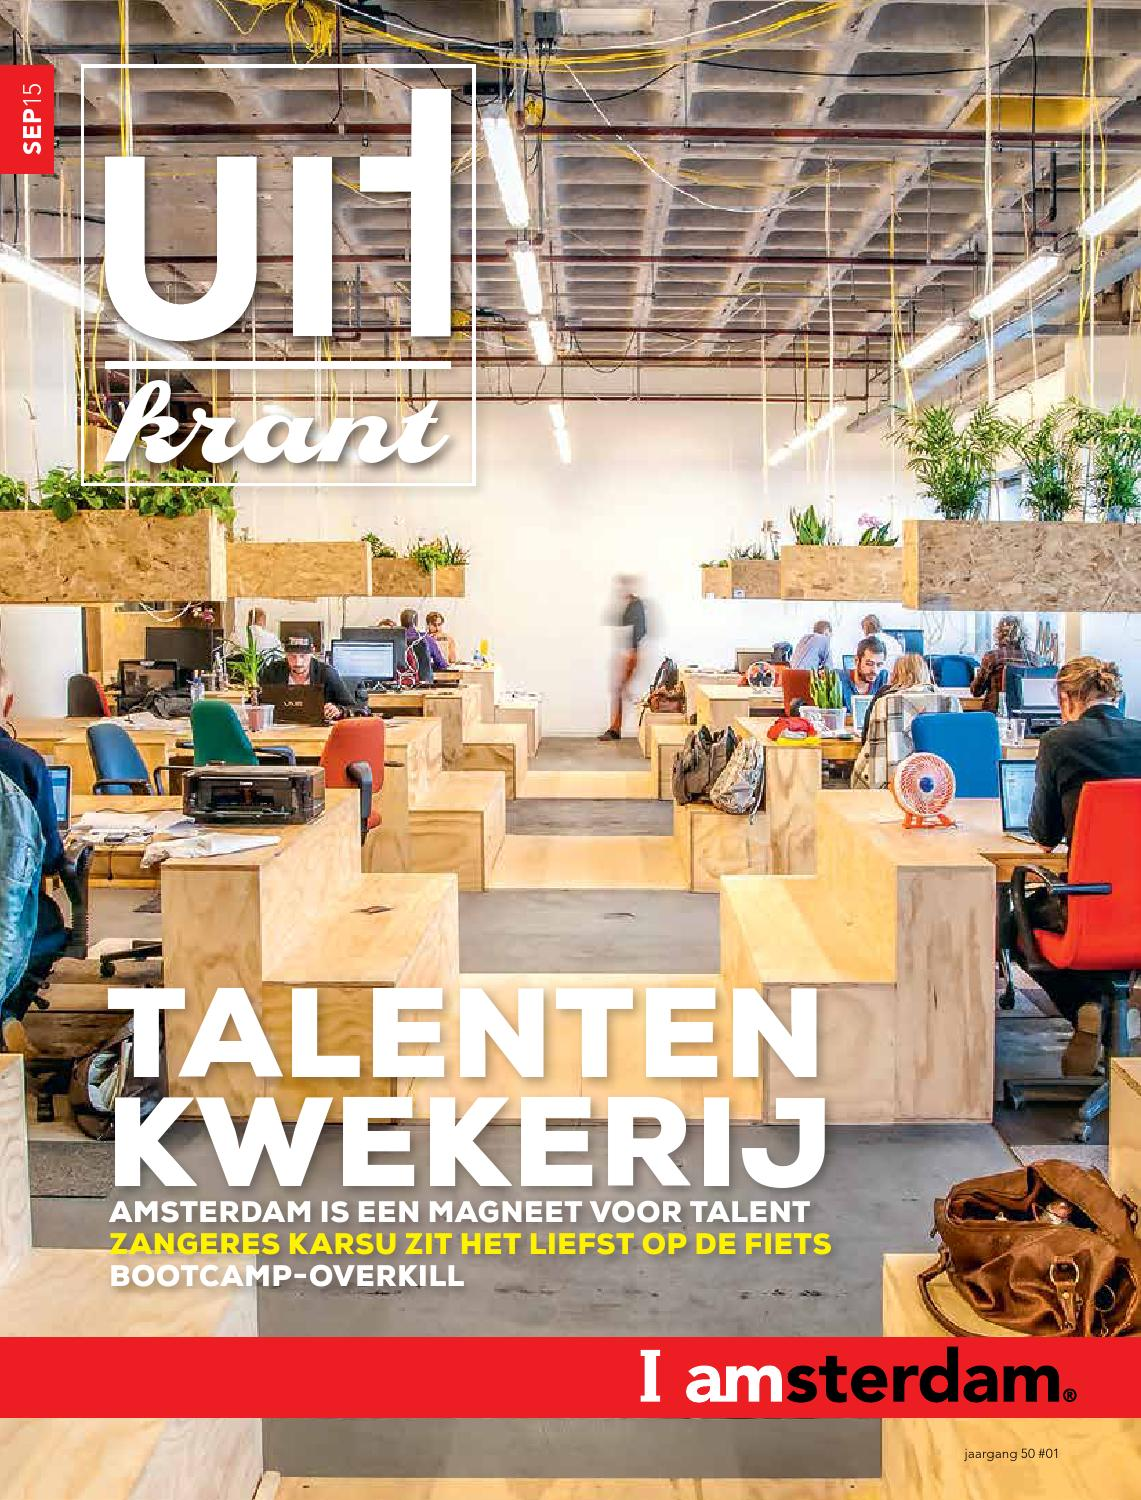 Uitkrant mei 2016 by amsterdam marketing   issuu